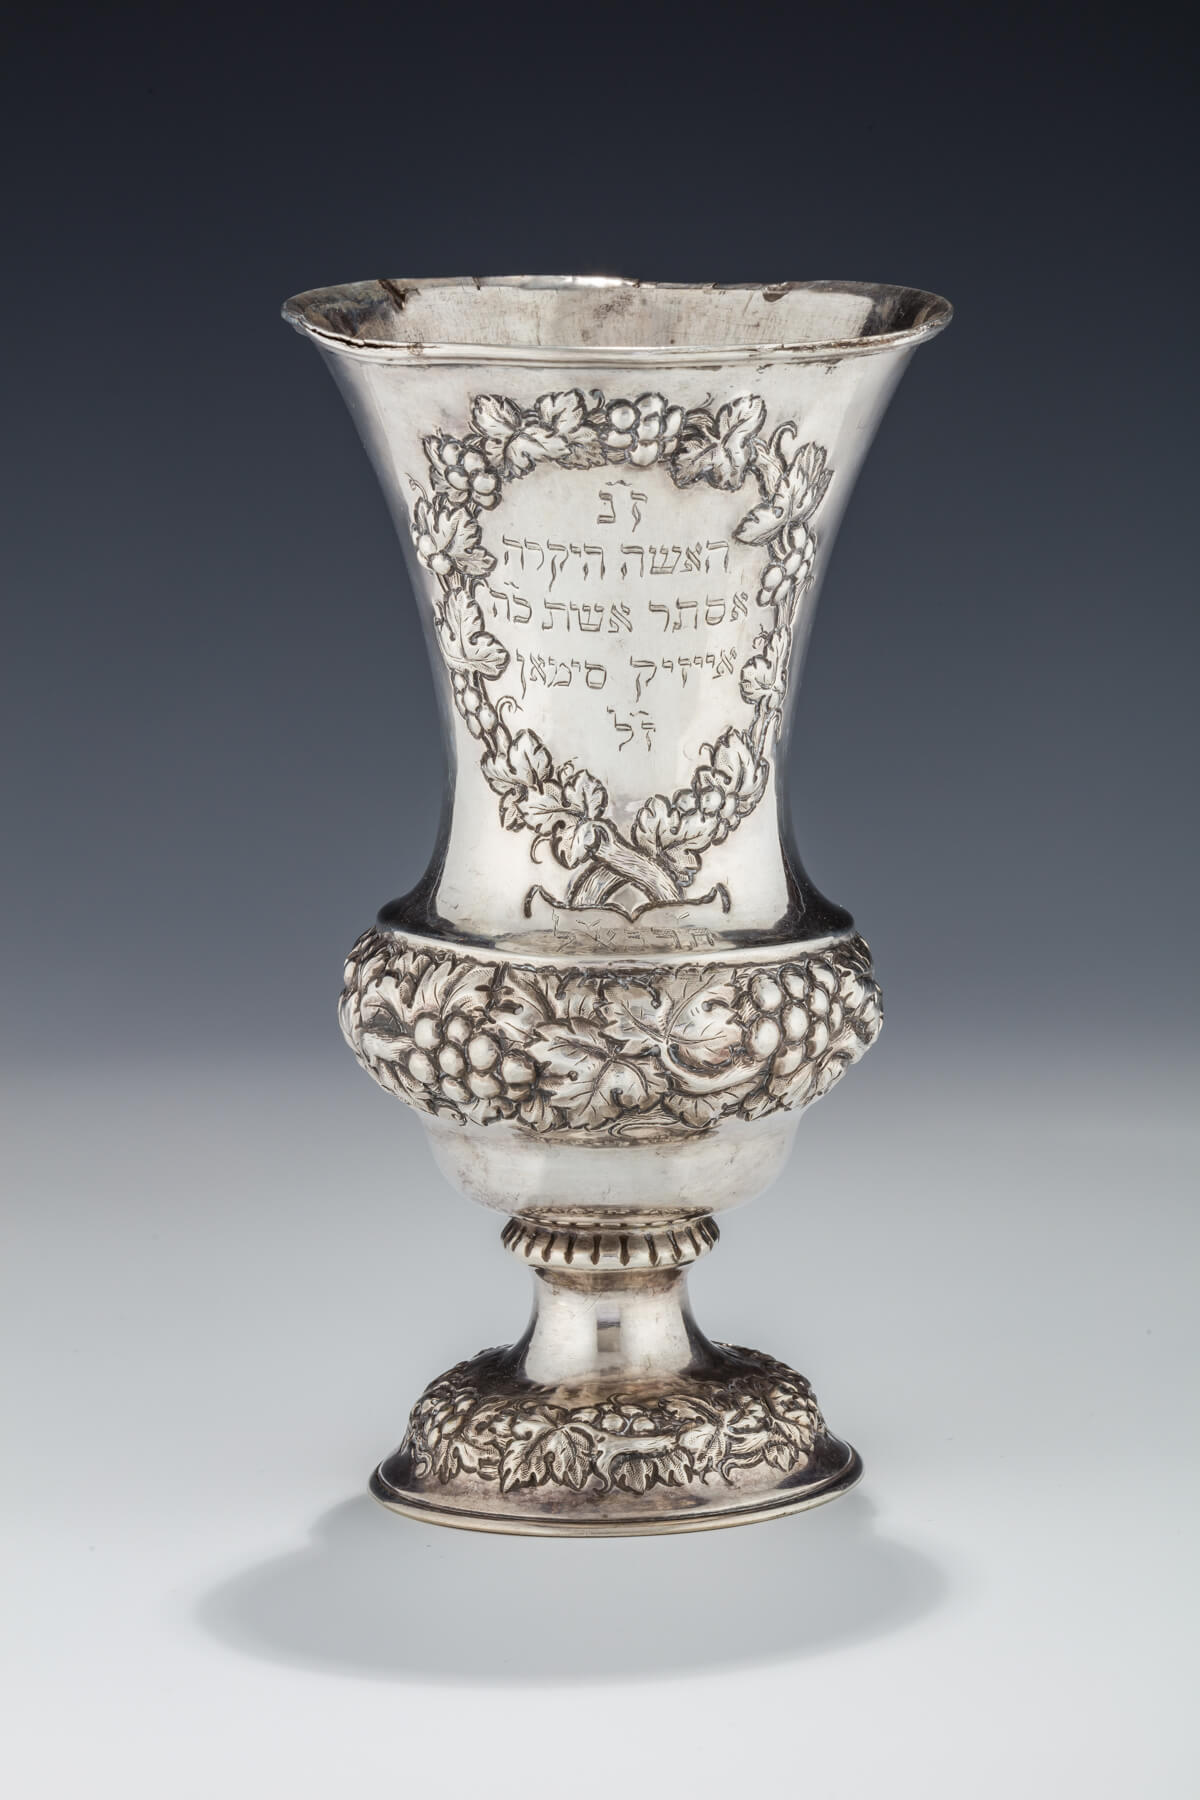 061. A Large Silver Kiddush Goblet